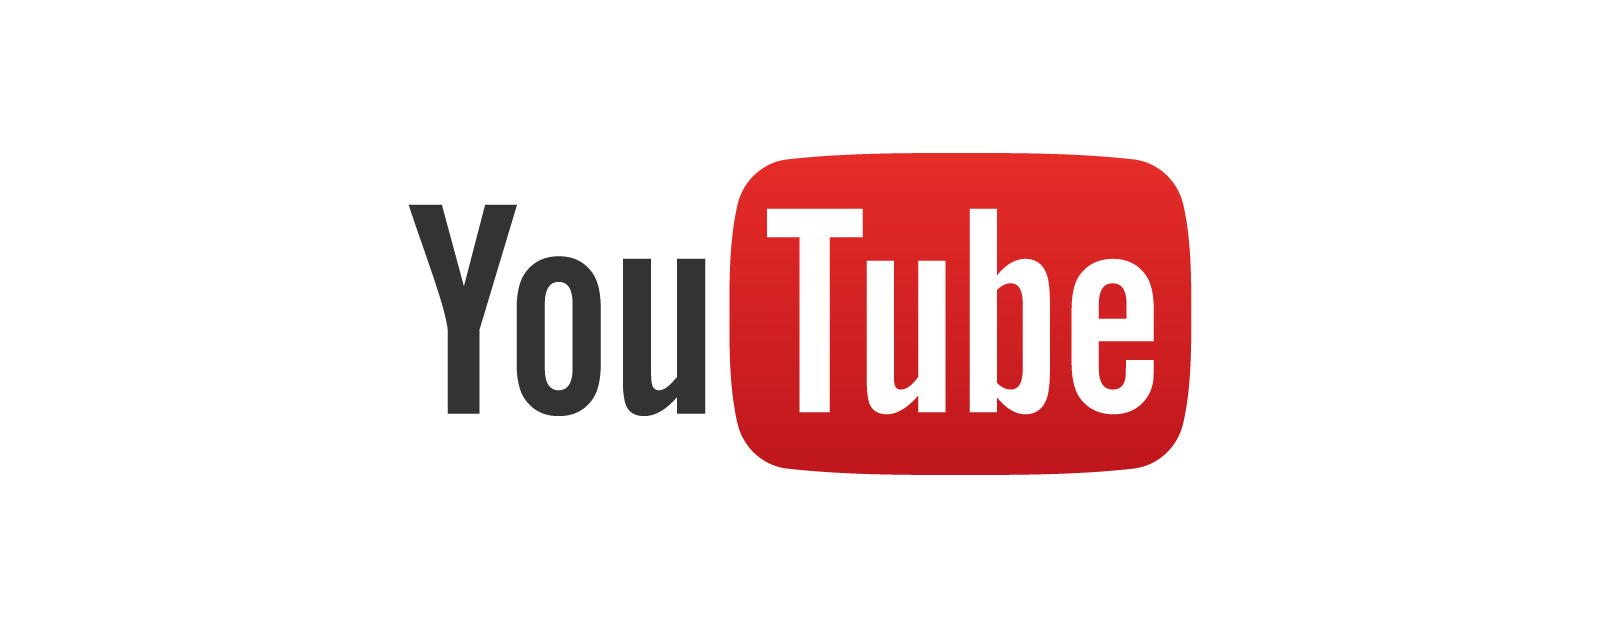 The YouTube Exec Working to Rid the Platform of Hatred and Scandal